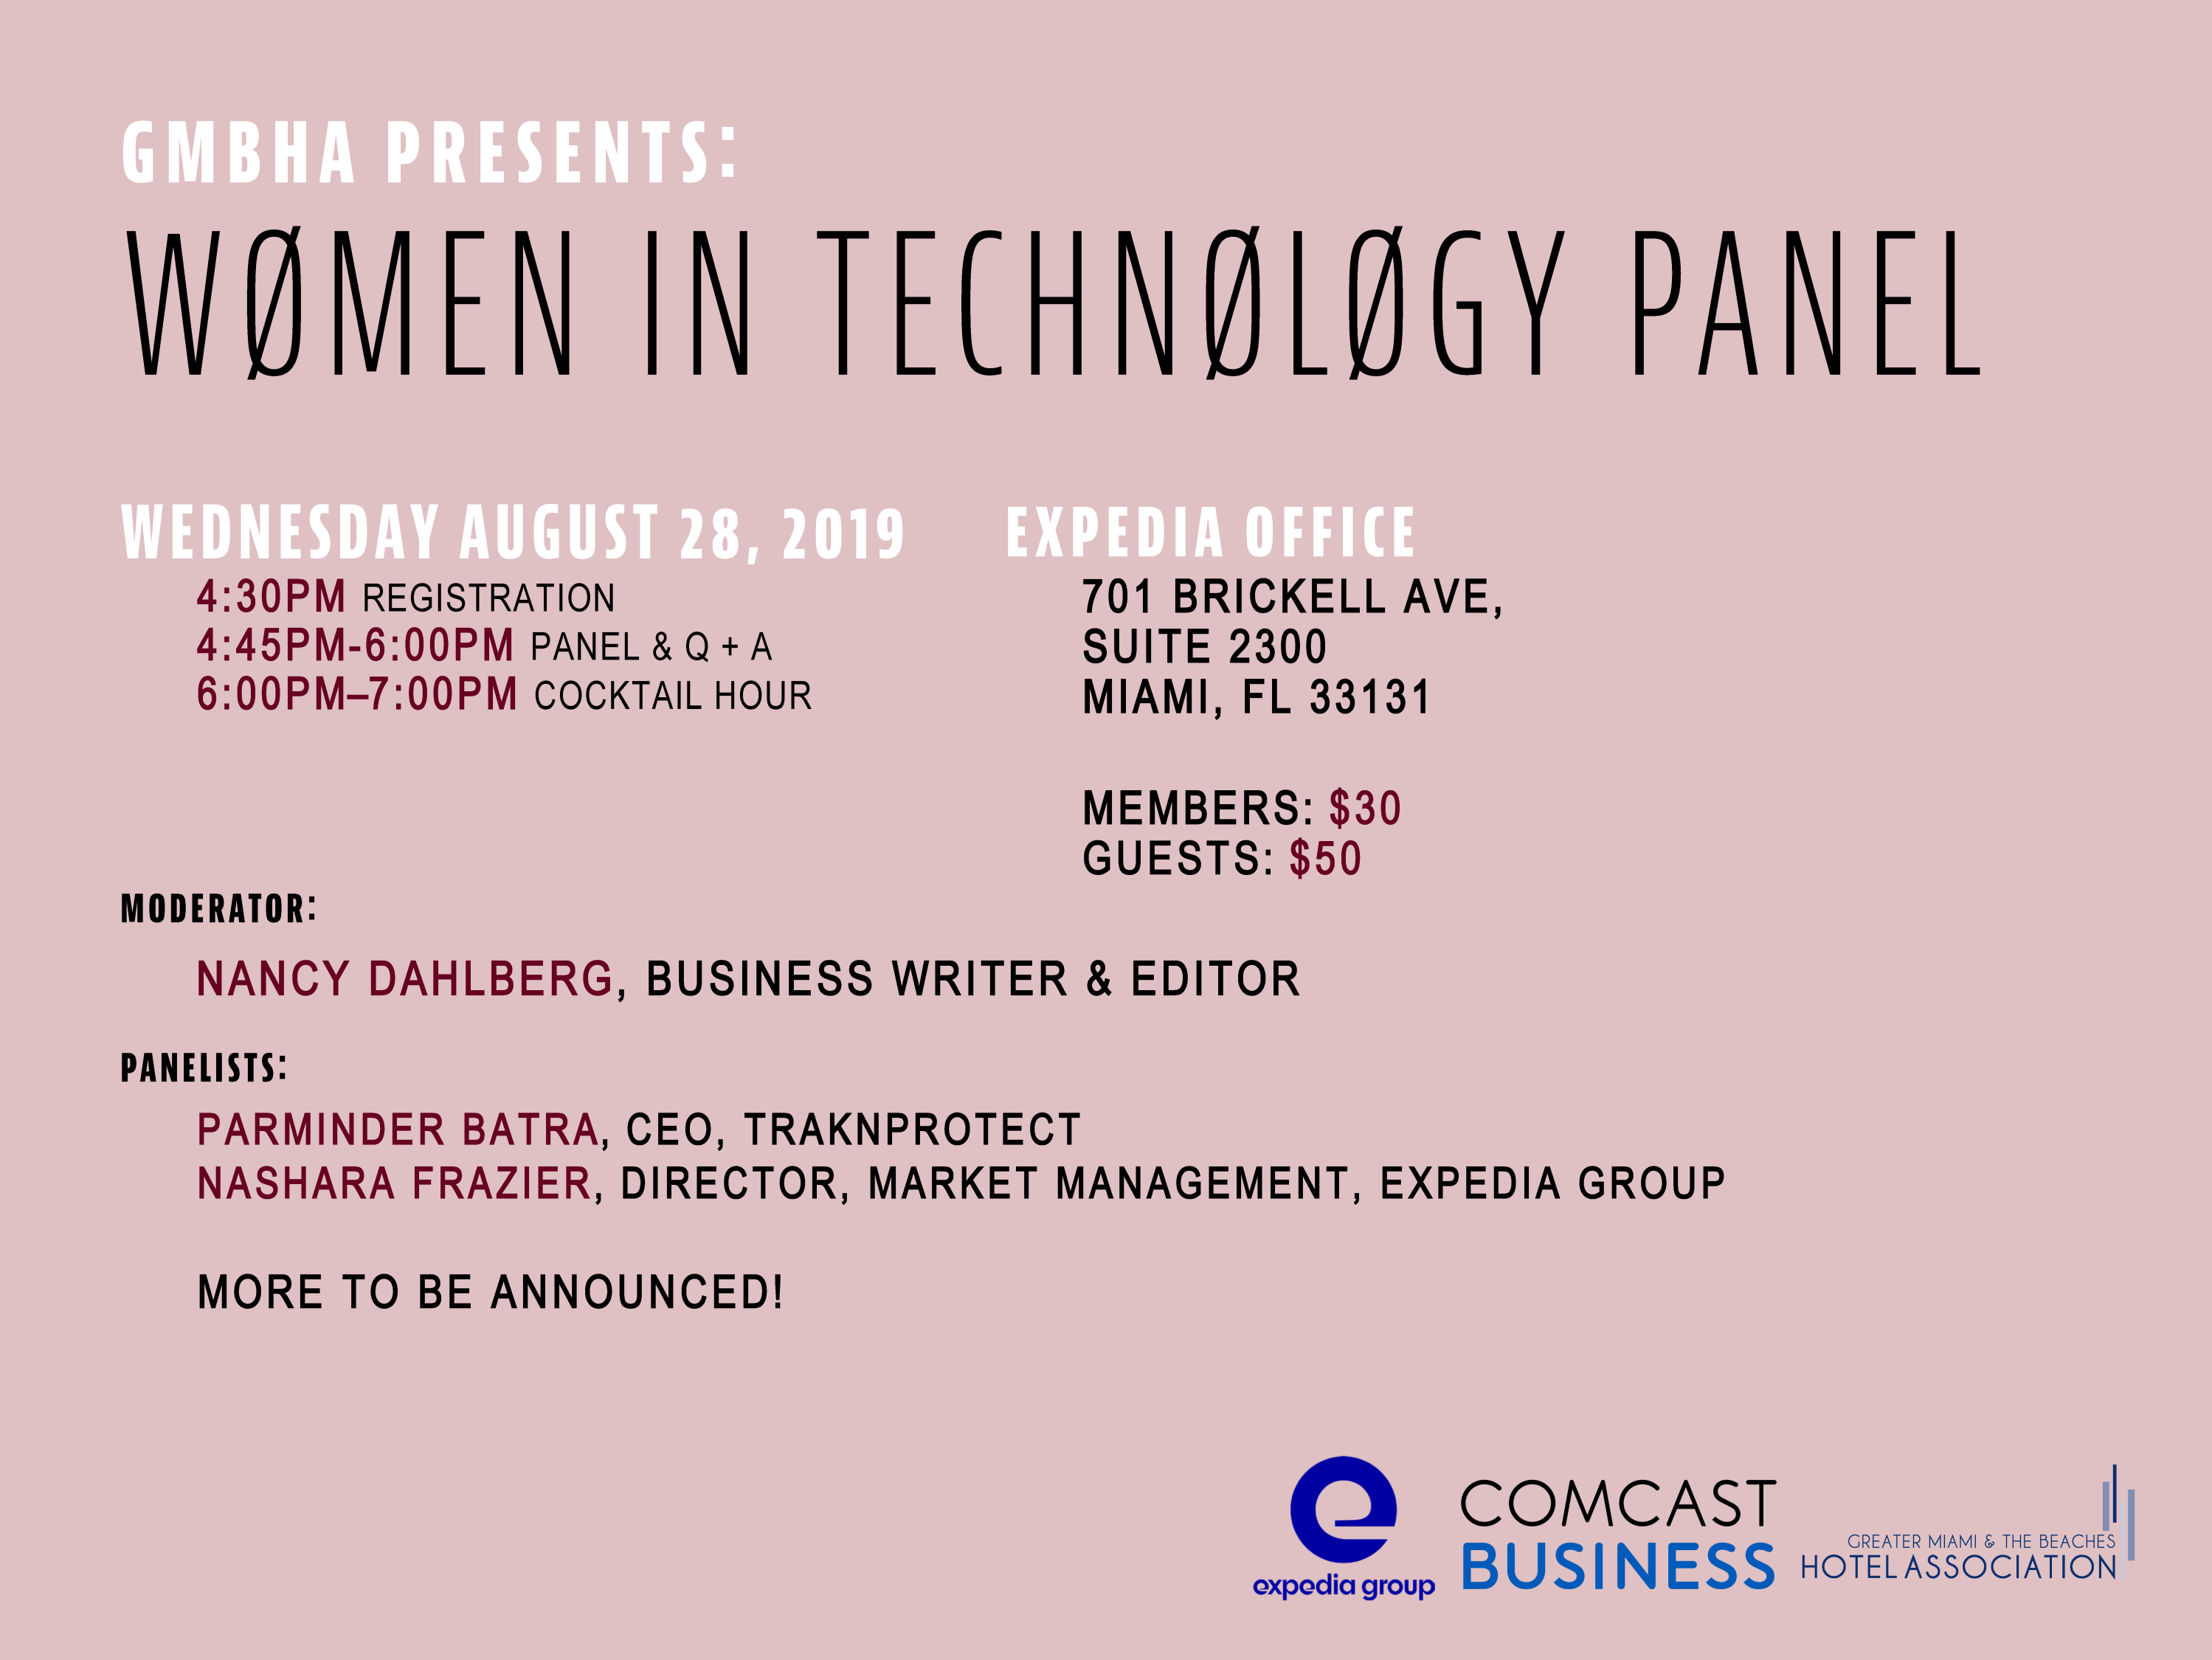 Women in Technology Panel